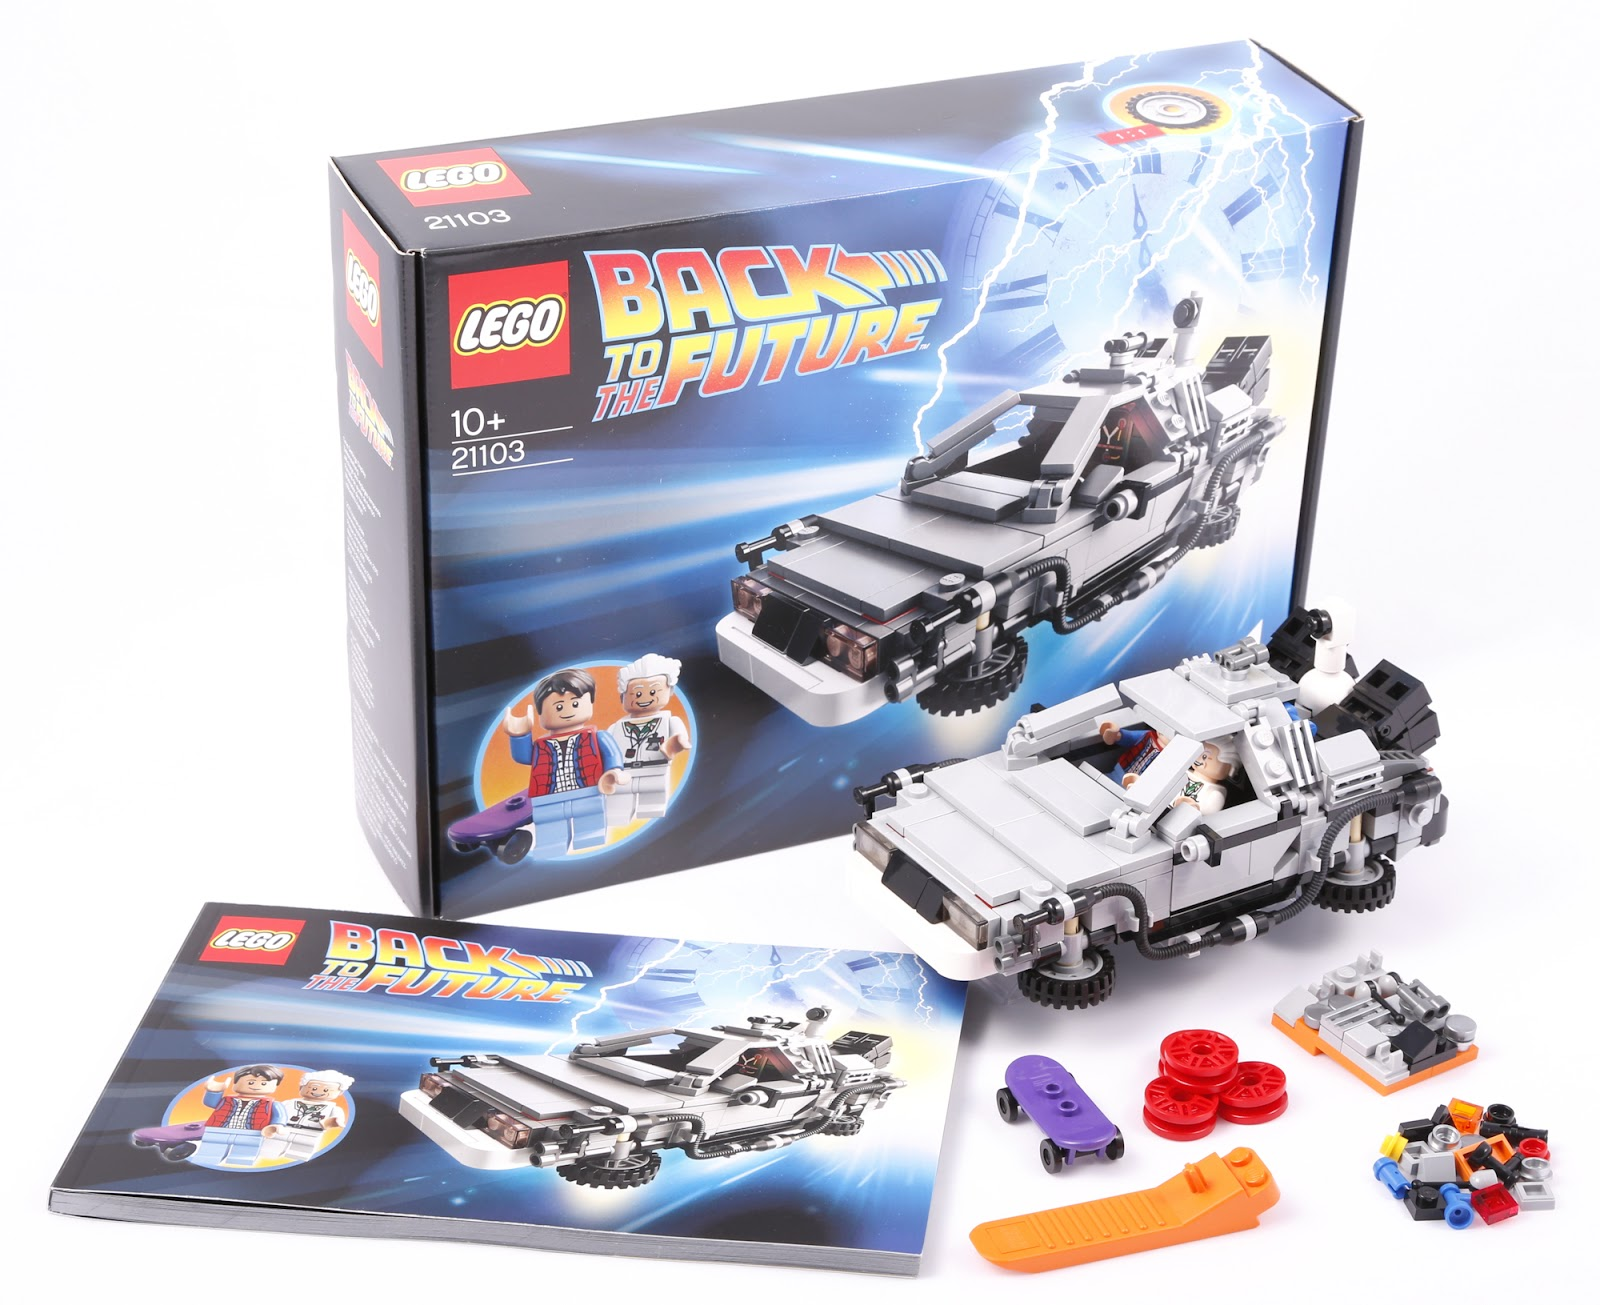 Lego Cuusoo 21103 Back to the Future Delorean time machine box instruction model parts